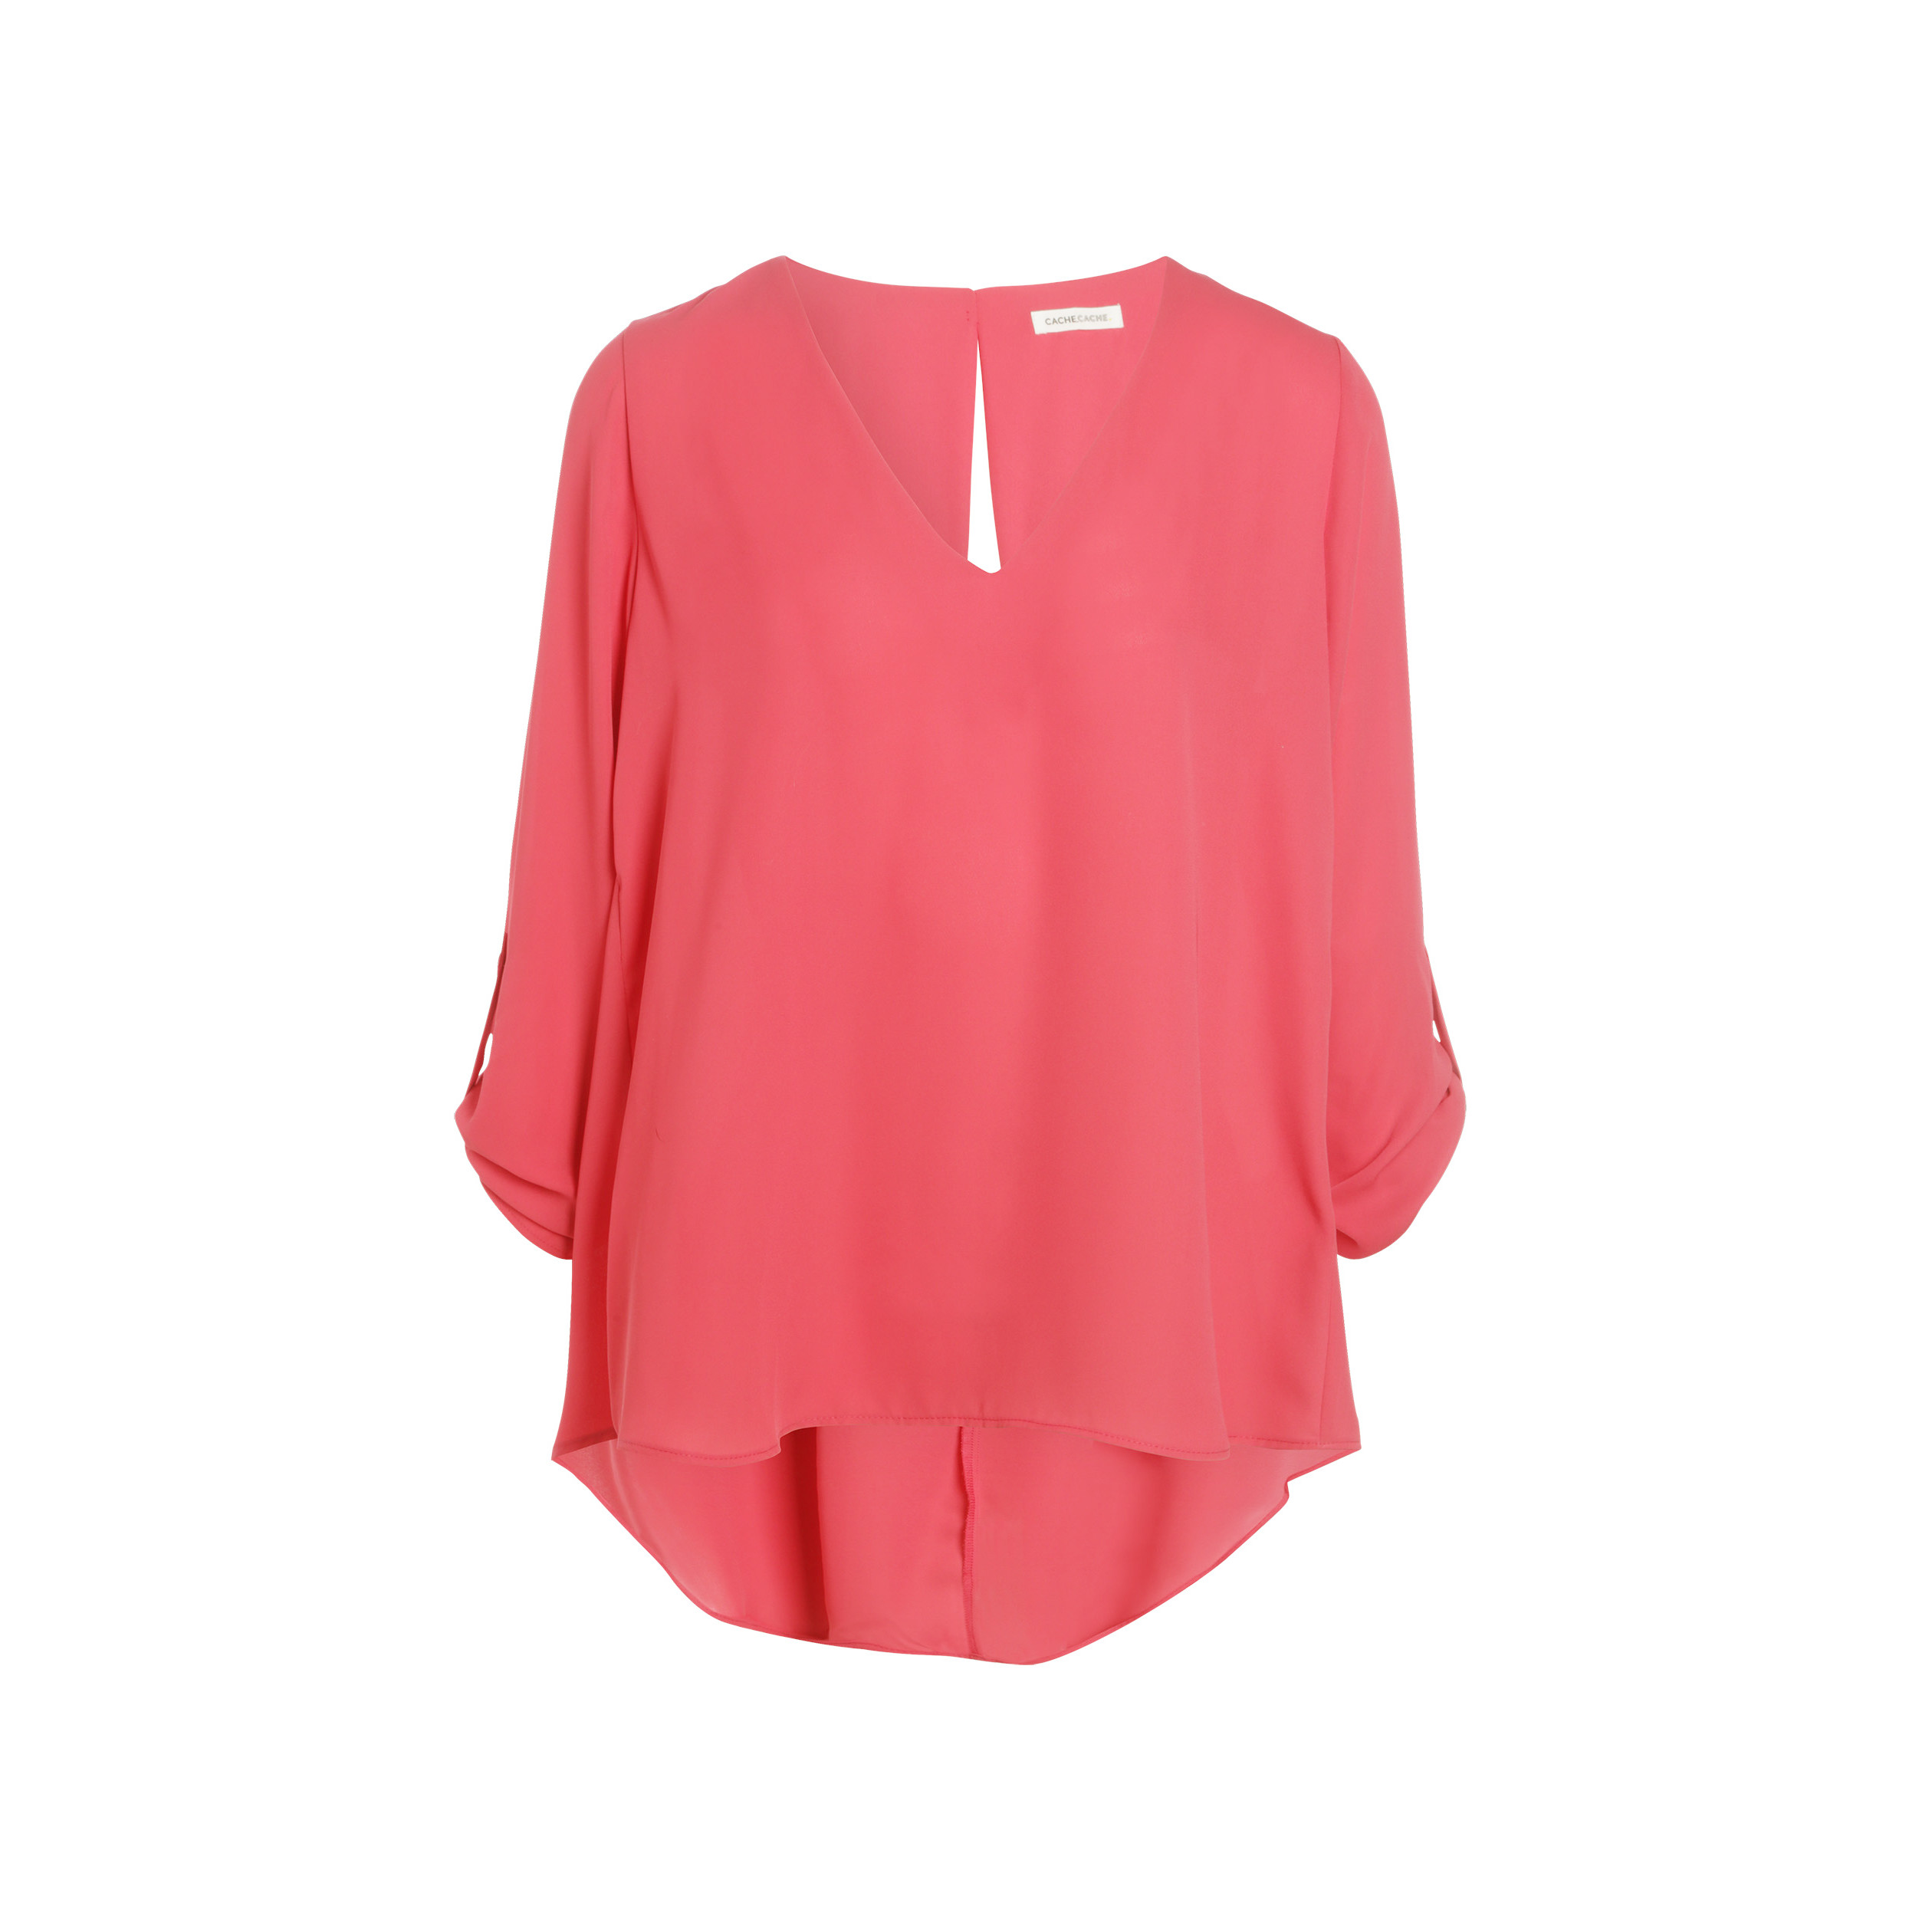 V Blouse Rose Longues Femme Col Framboise Manches dxBeCWro